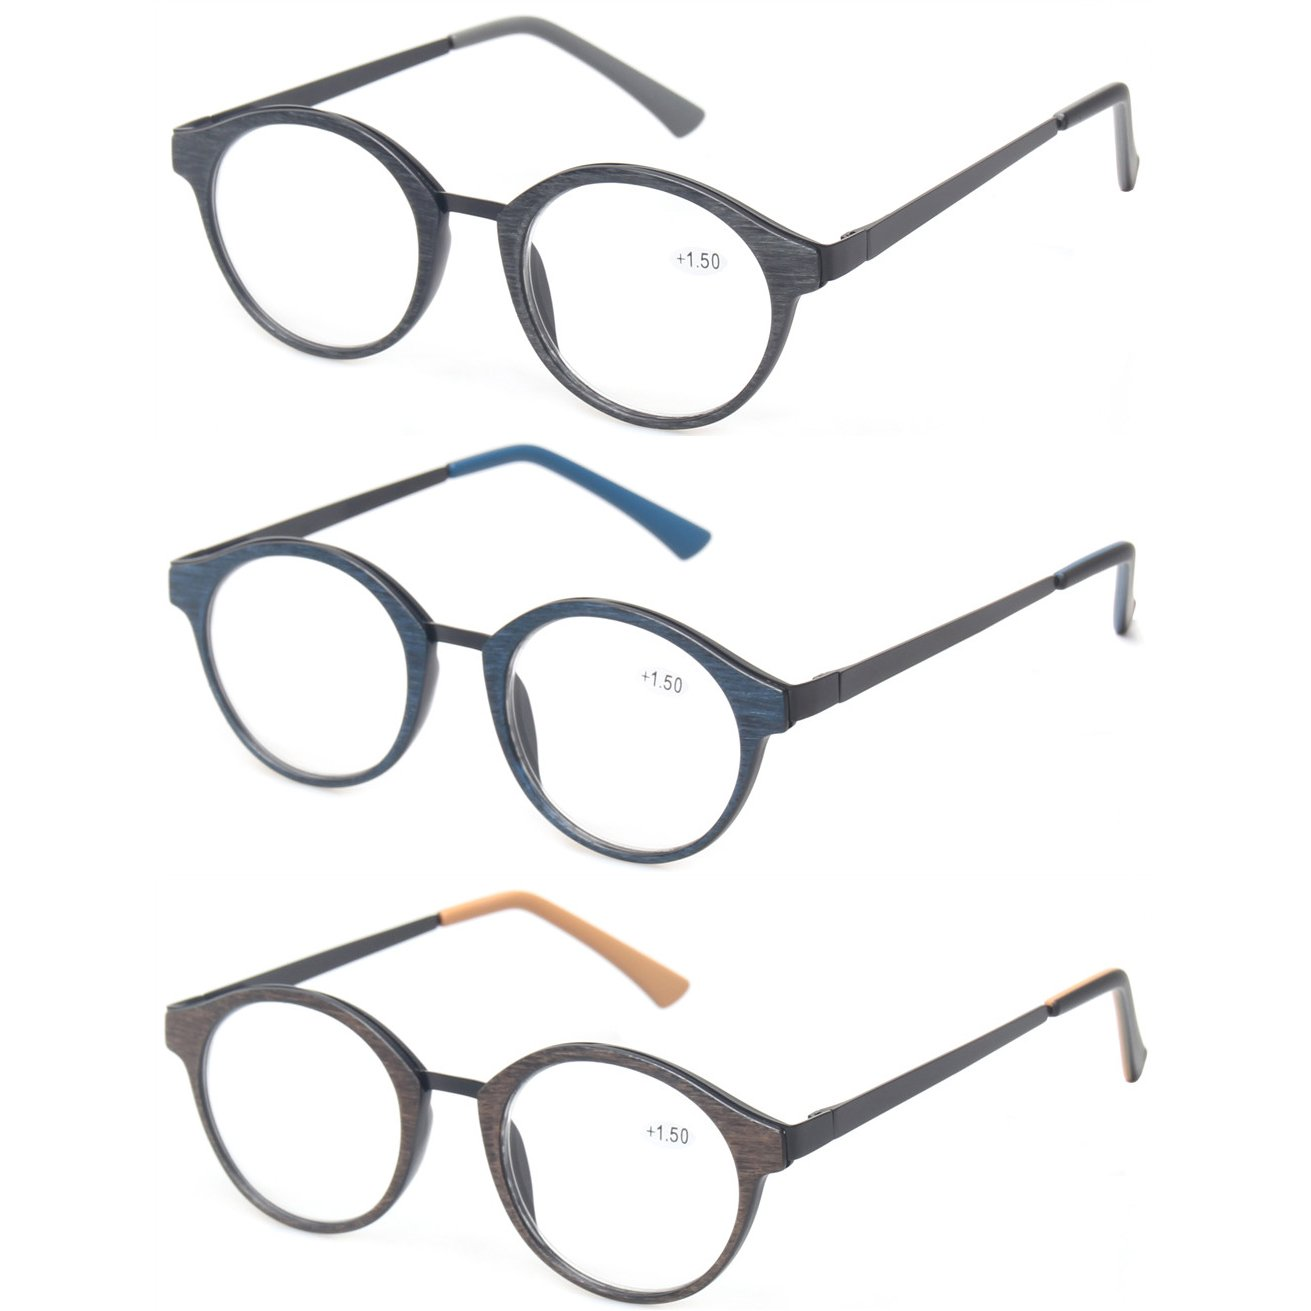 Kerecsen 3 Pack Vintge Metal Round Reading Glasses Classic Men and Women Spring Hinge Readers (3 Pack Mix Color, 2.75) by Kerecsen